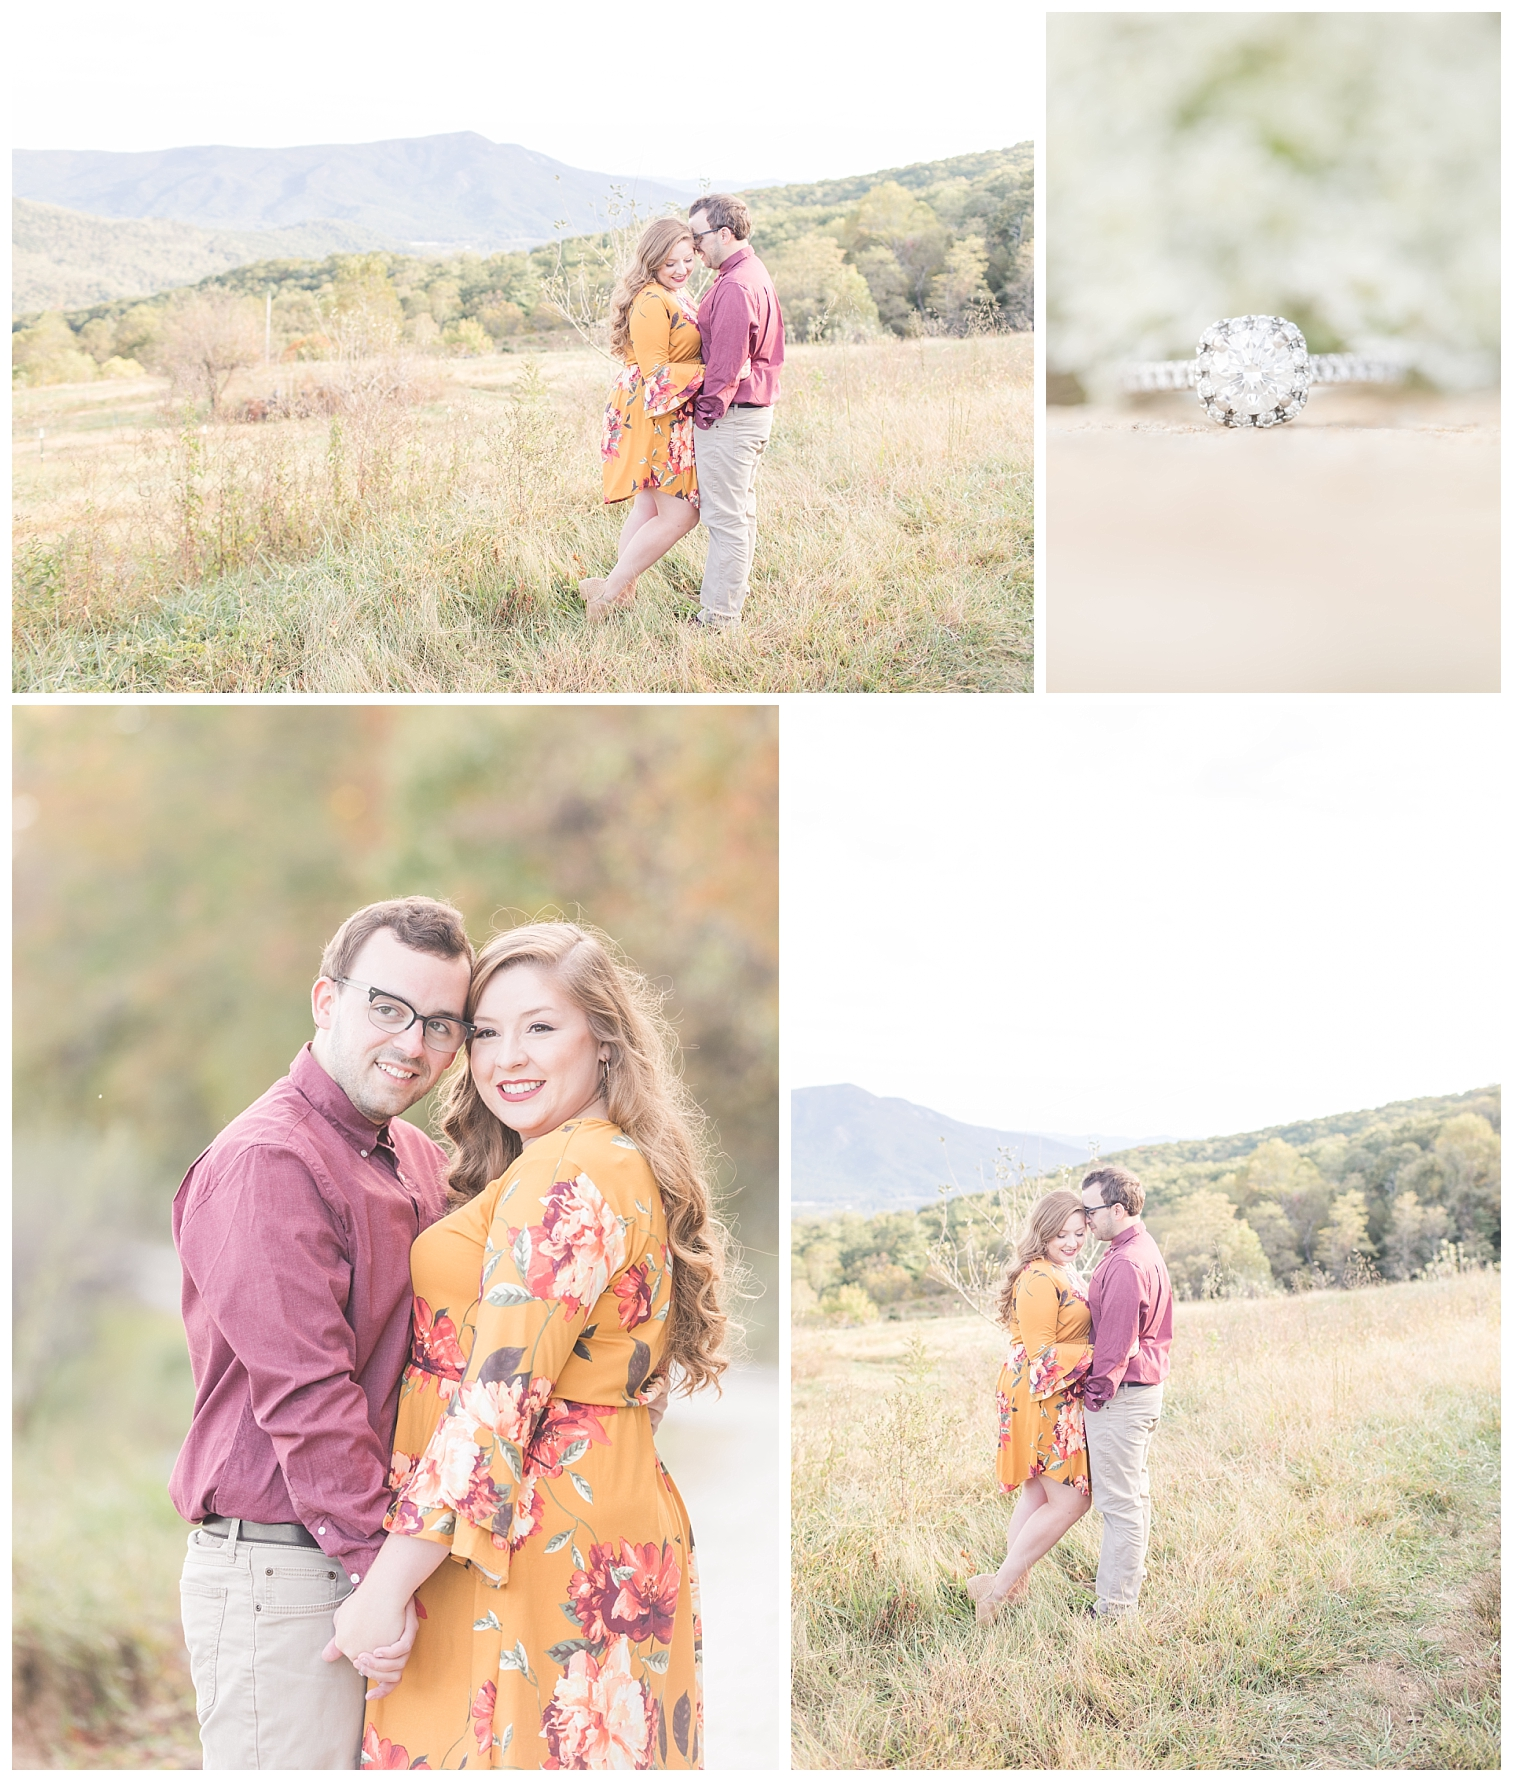 Natalie & Parker | Fall Engagement Session | VA Wedding Photographer